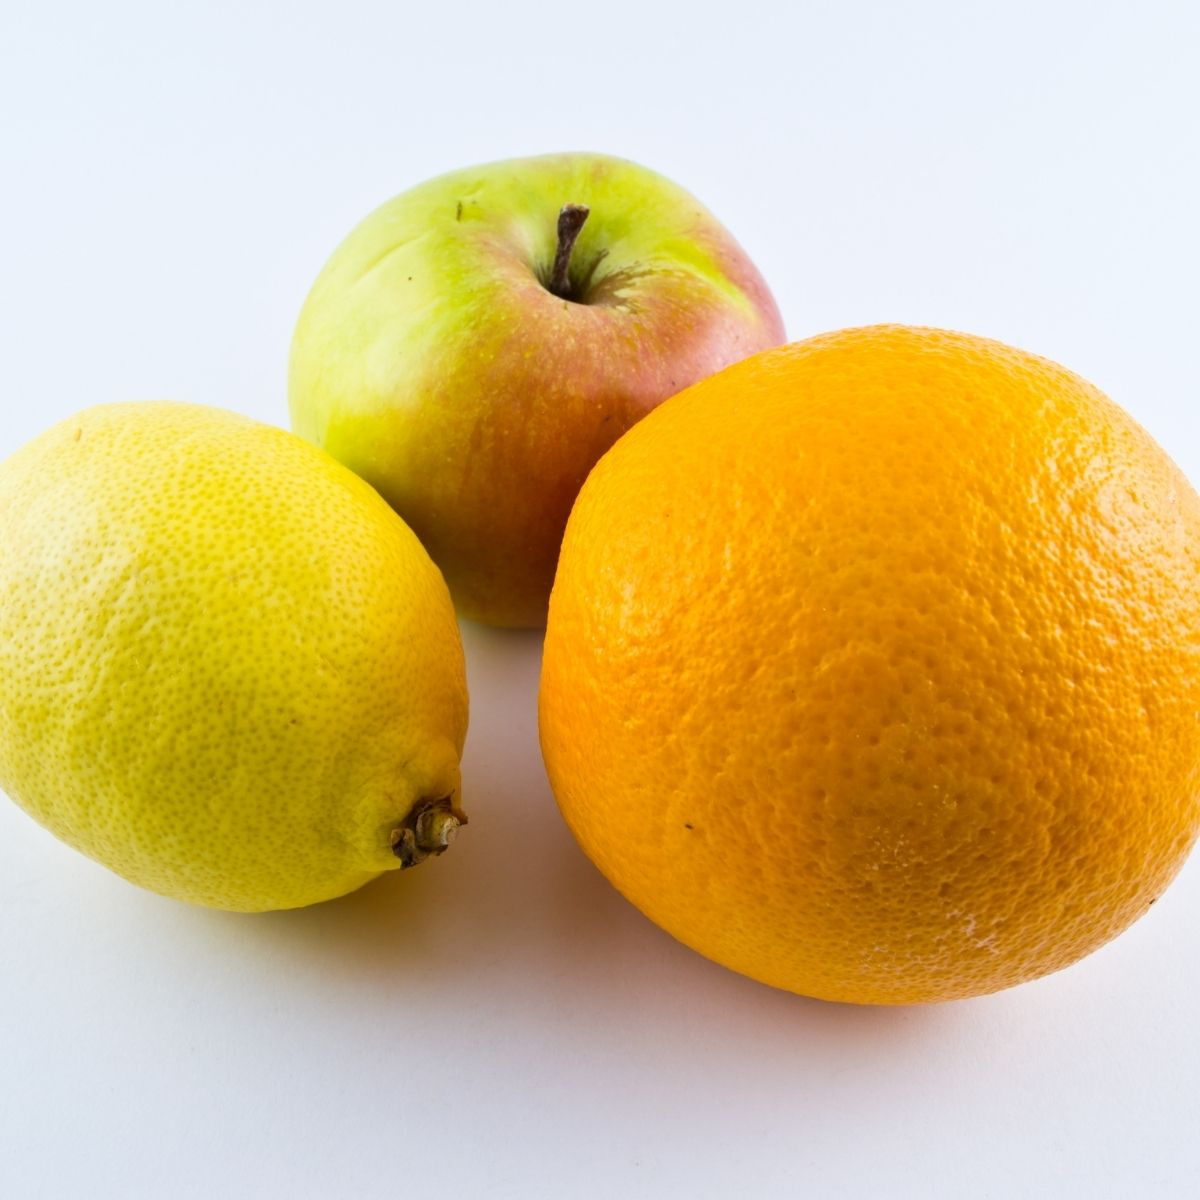 An apple, an orange and a lemon on a white background